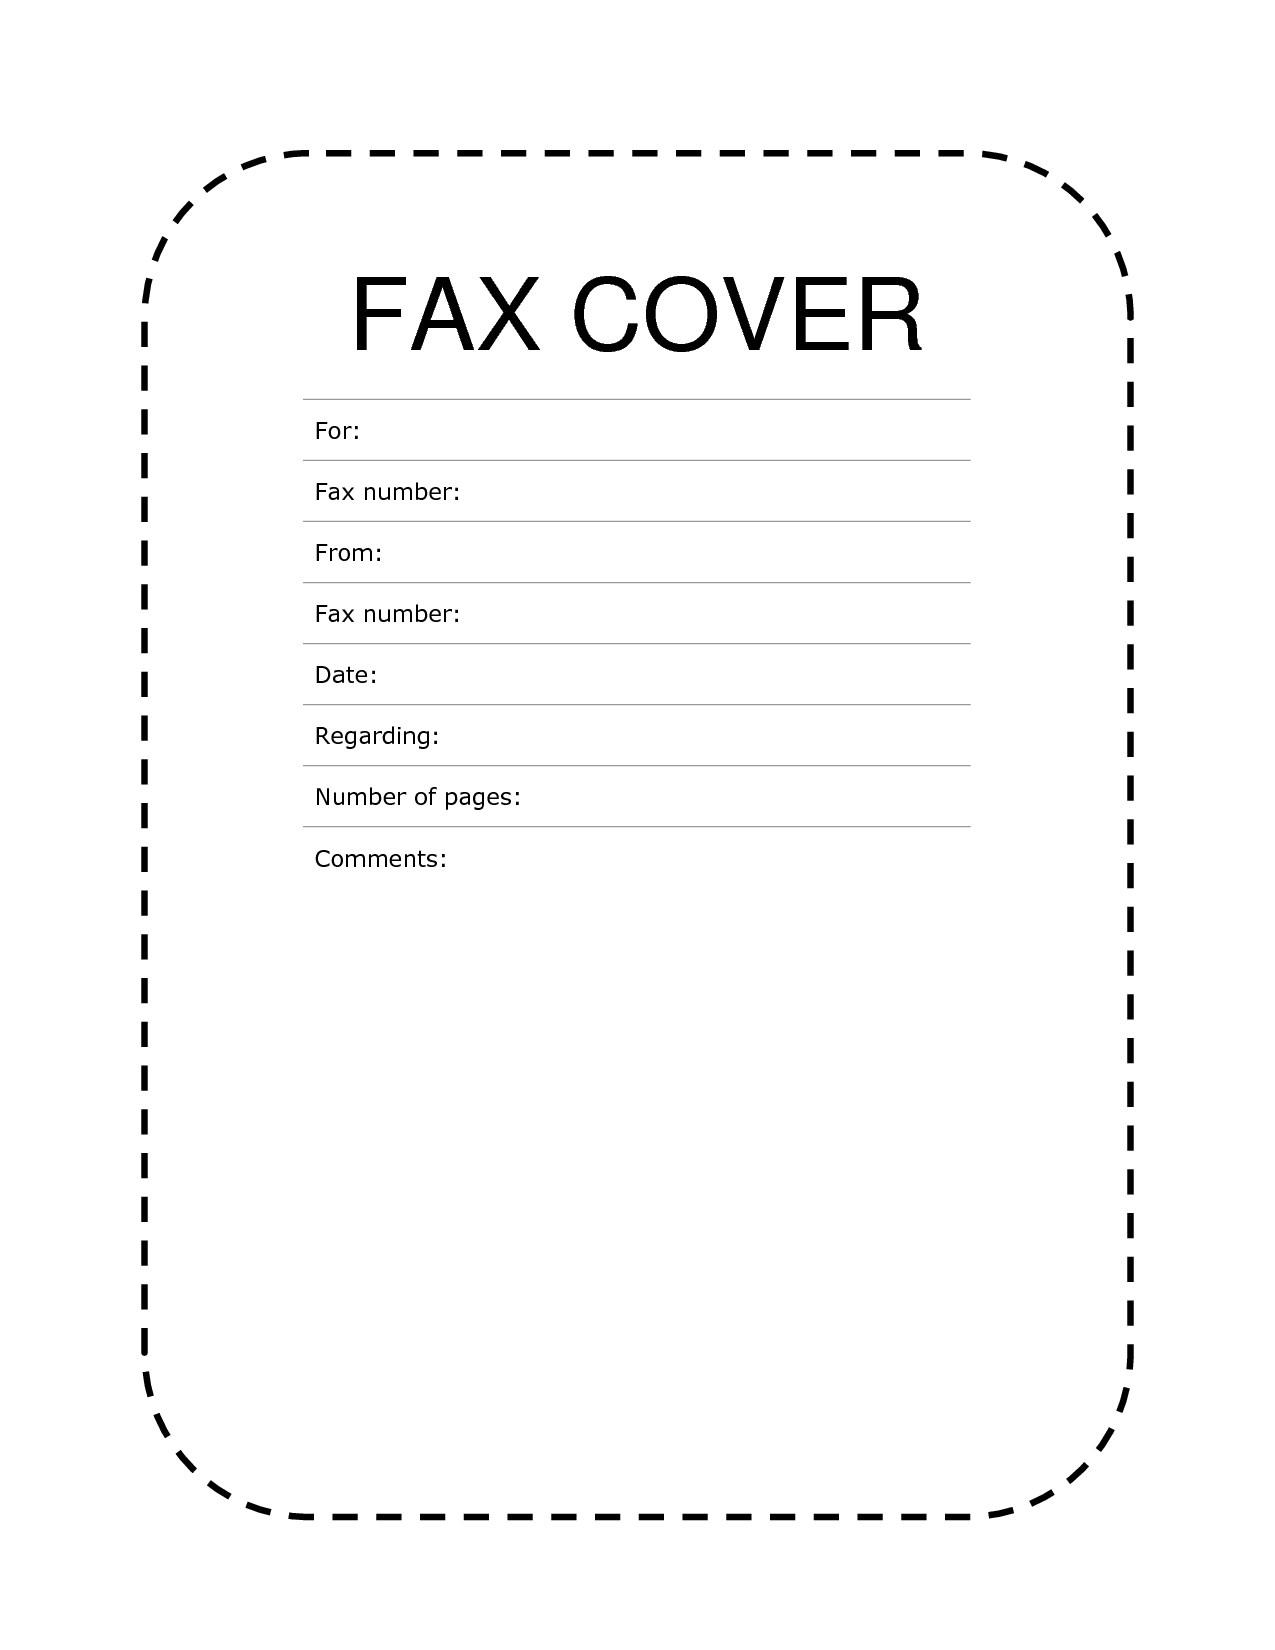 Free Fax Cover Sheets Templates Printable